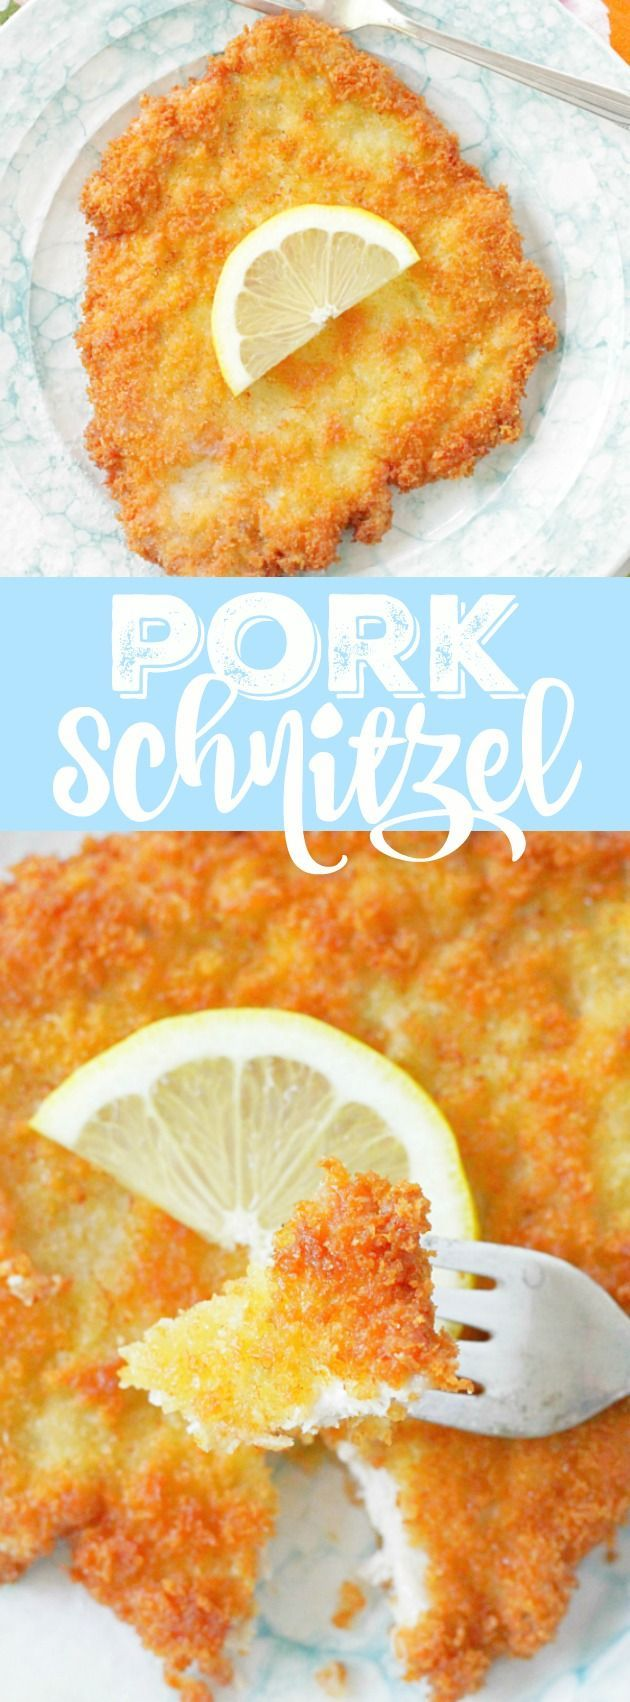 Schnitzel — Kid Approved! Be sure to read this great, informative post!